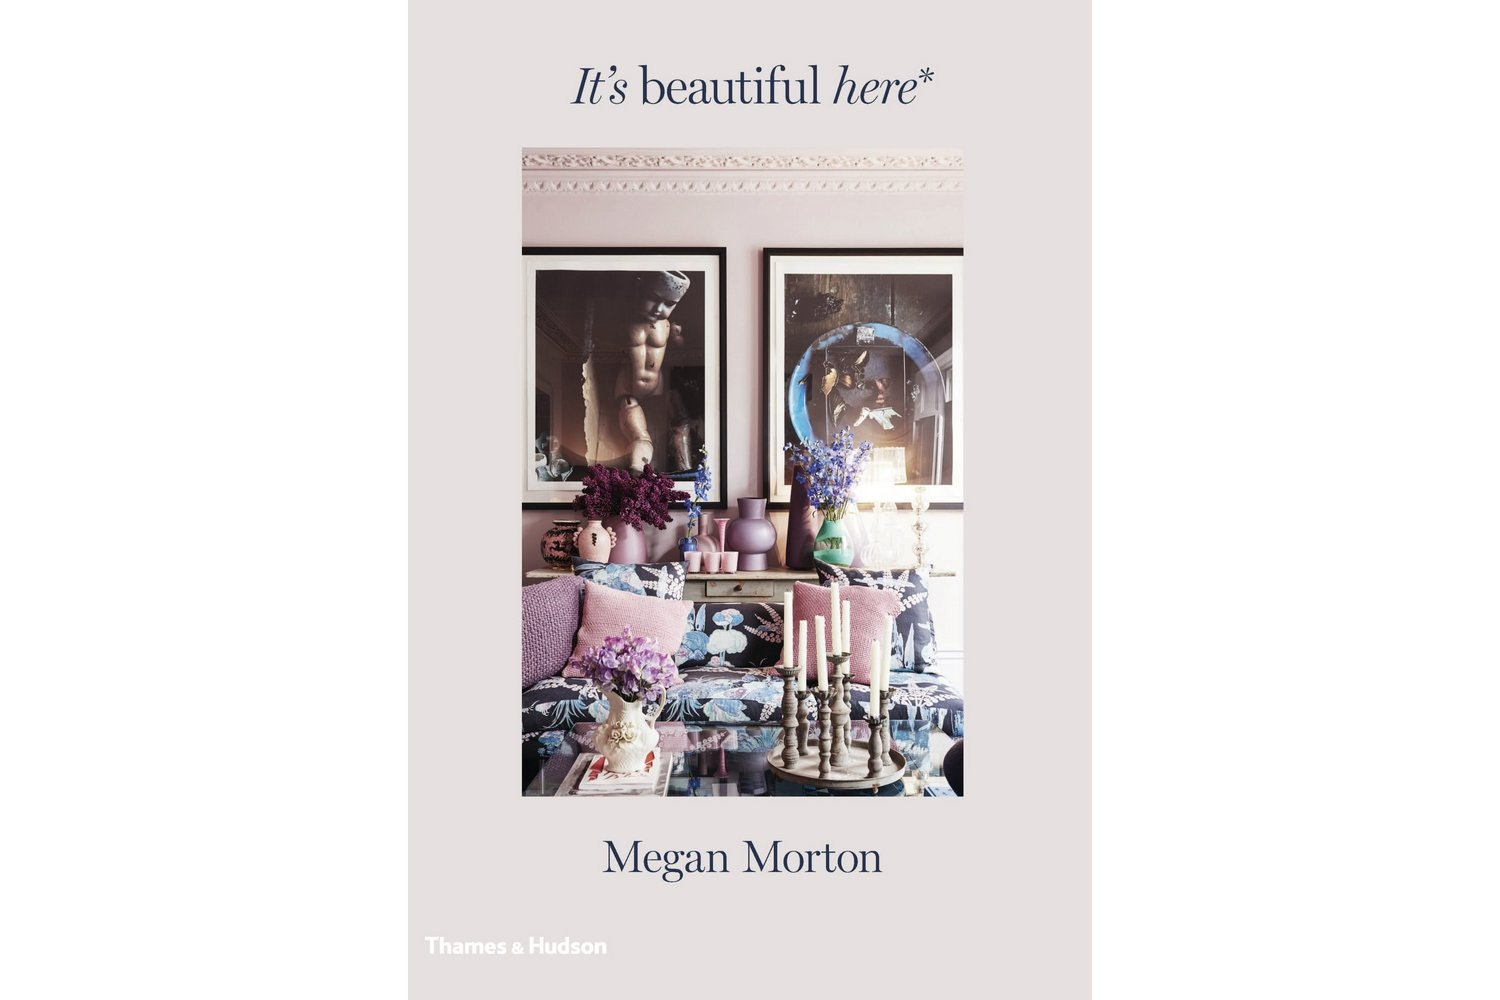 It's Beautiful Here Book by Megan Morton for Thames & Hudson